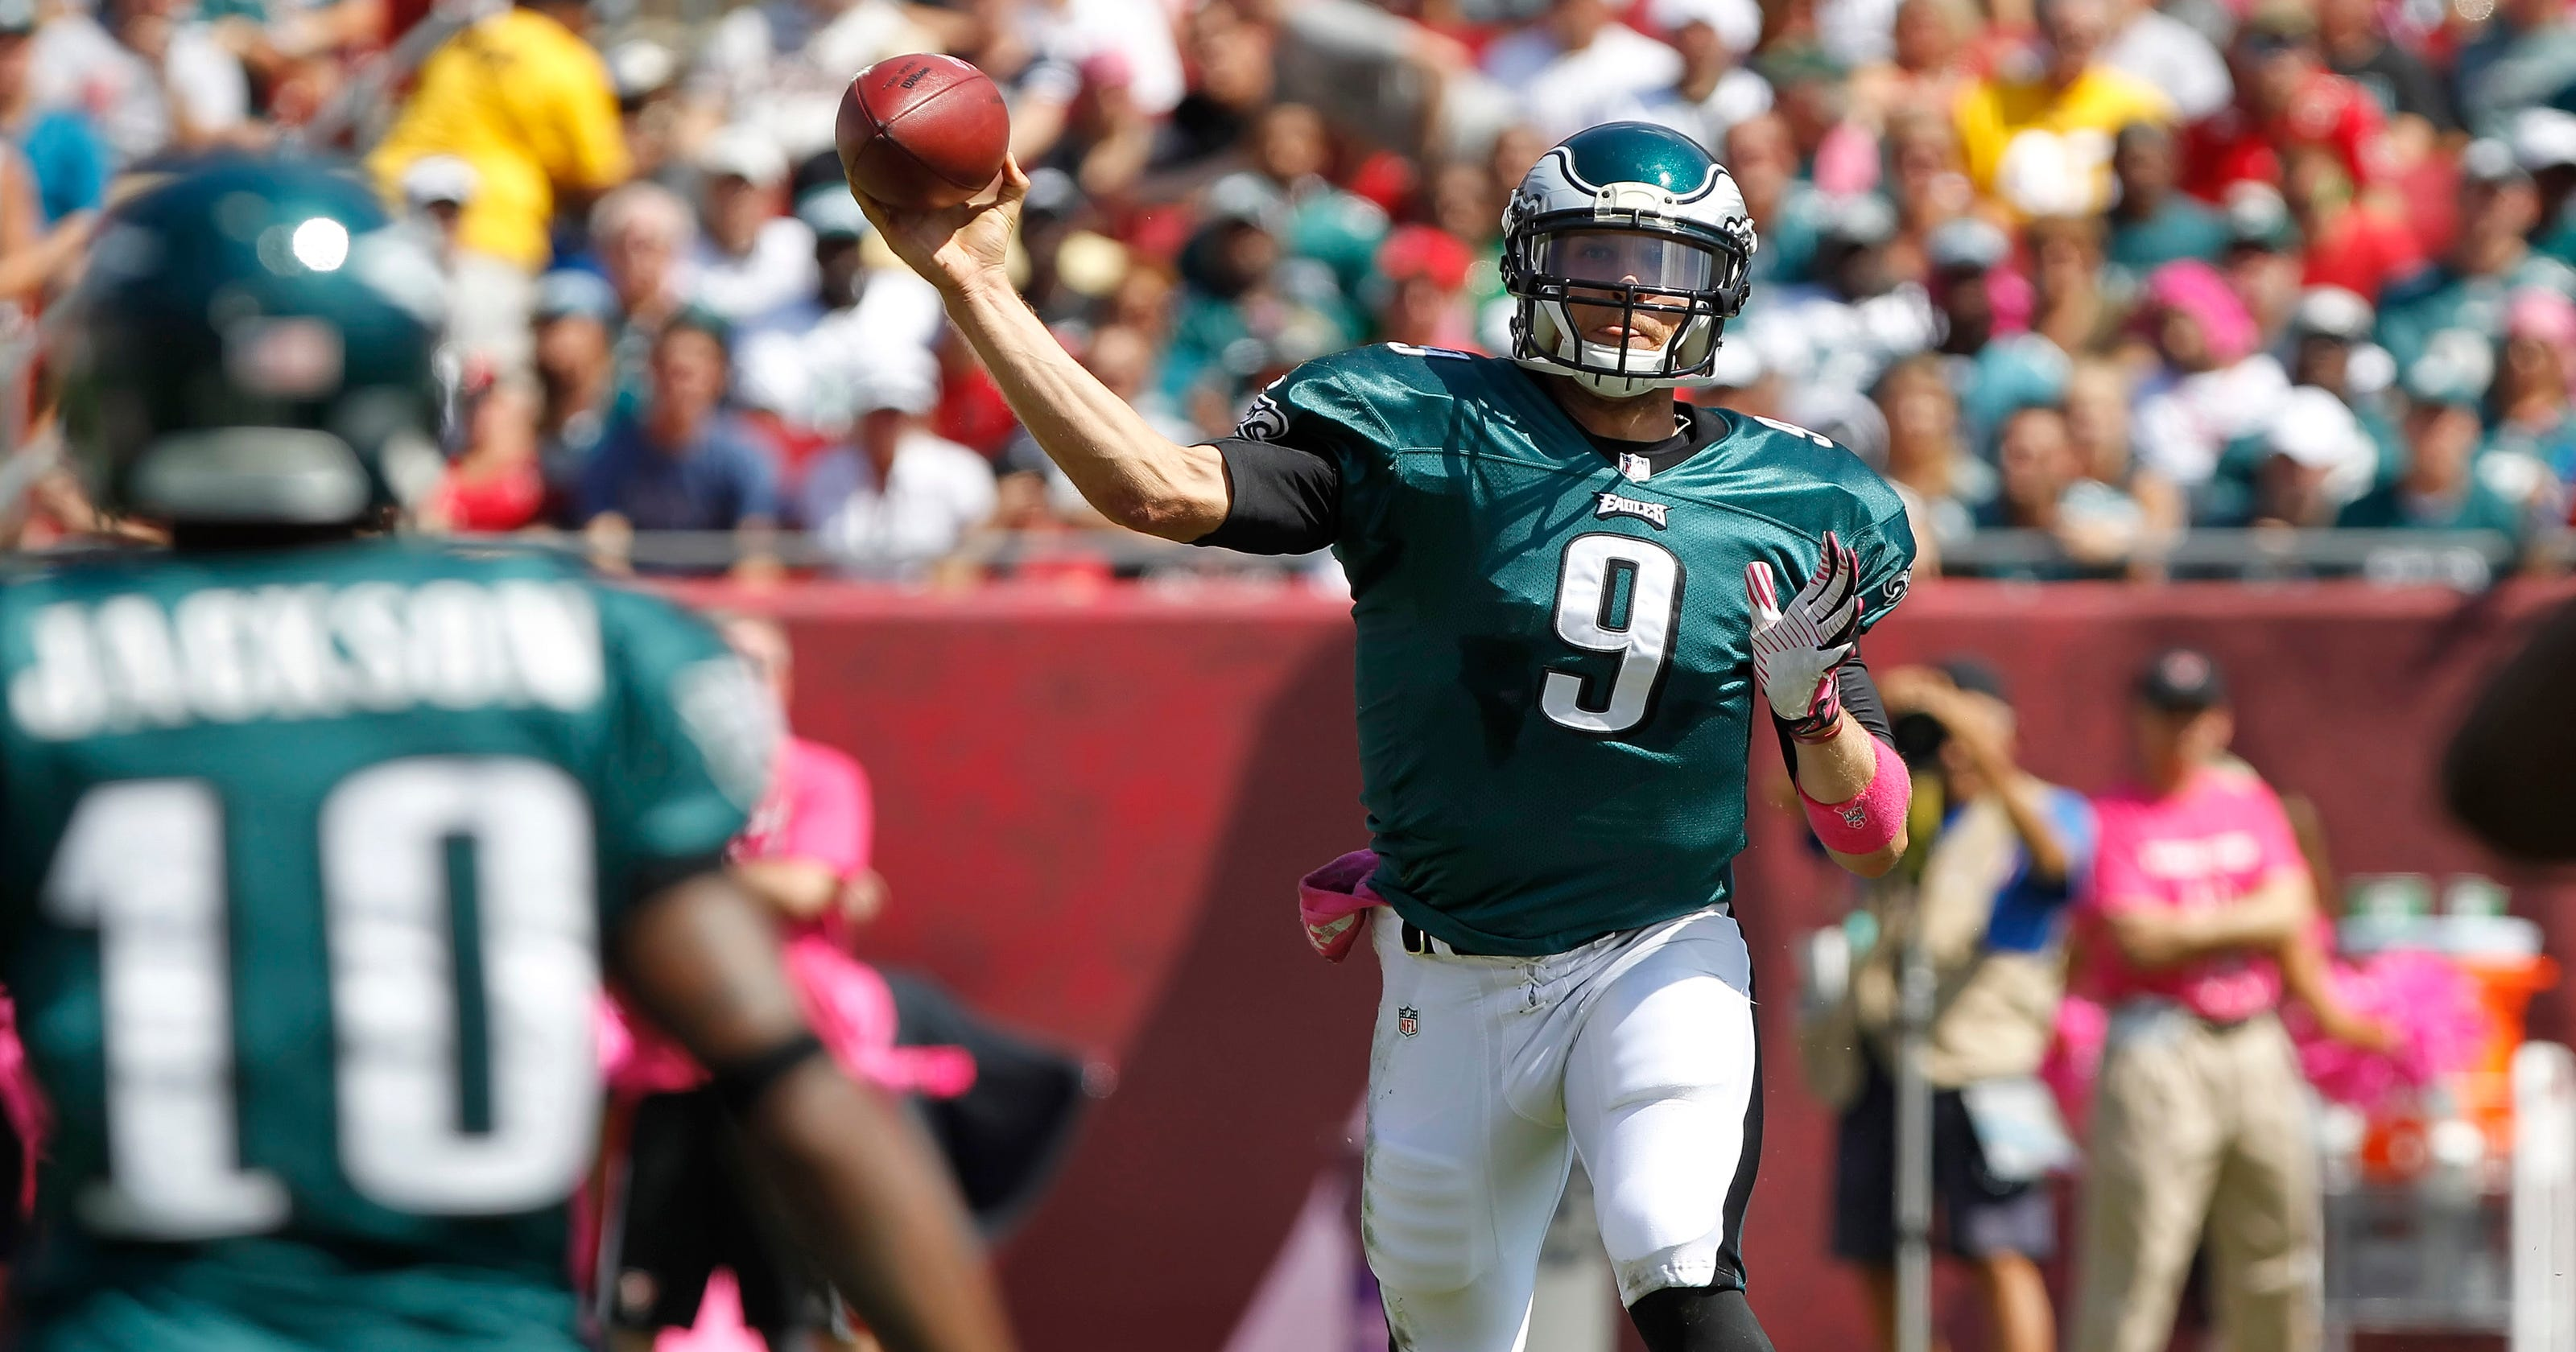 608570706 Nick Foles steps up big with 4 TDs as Eagles top Bucs